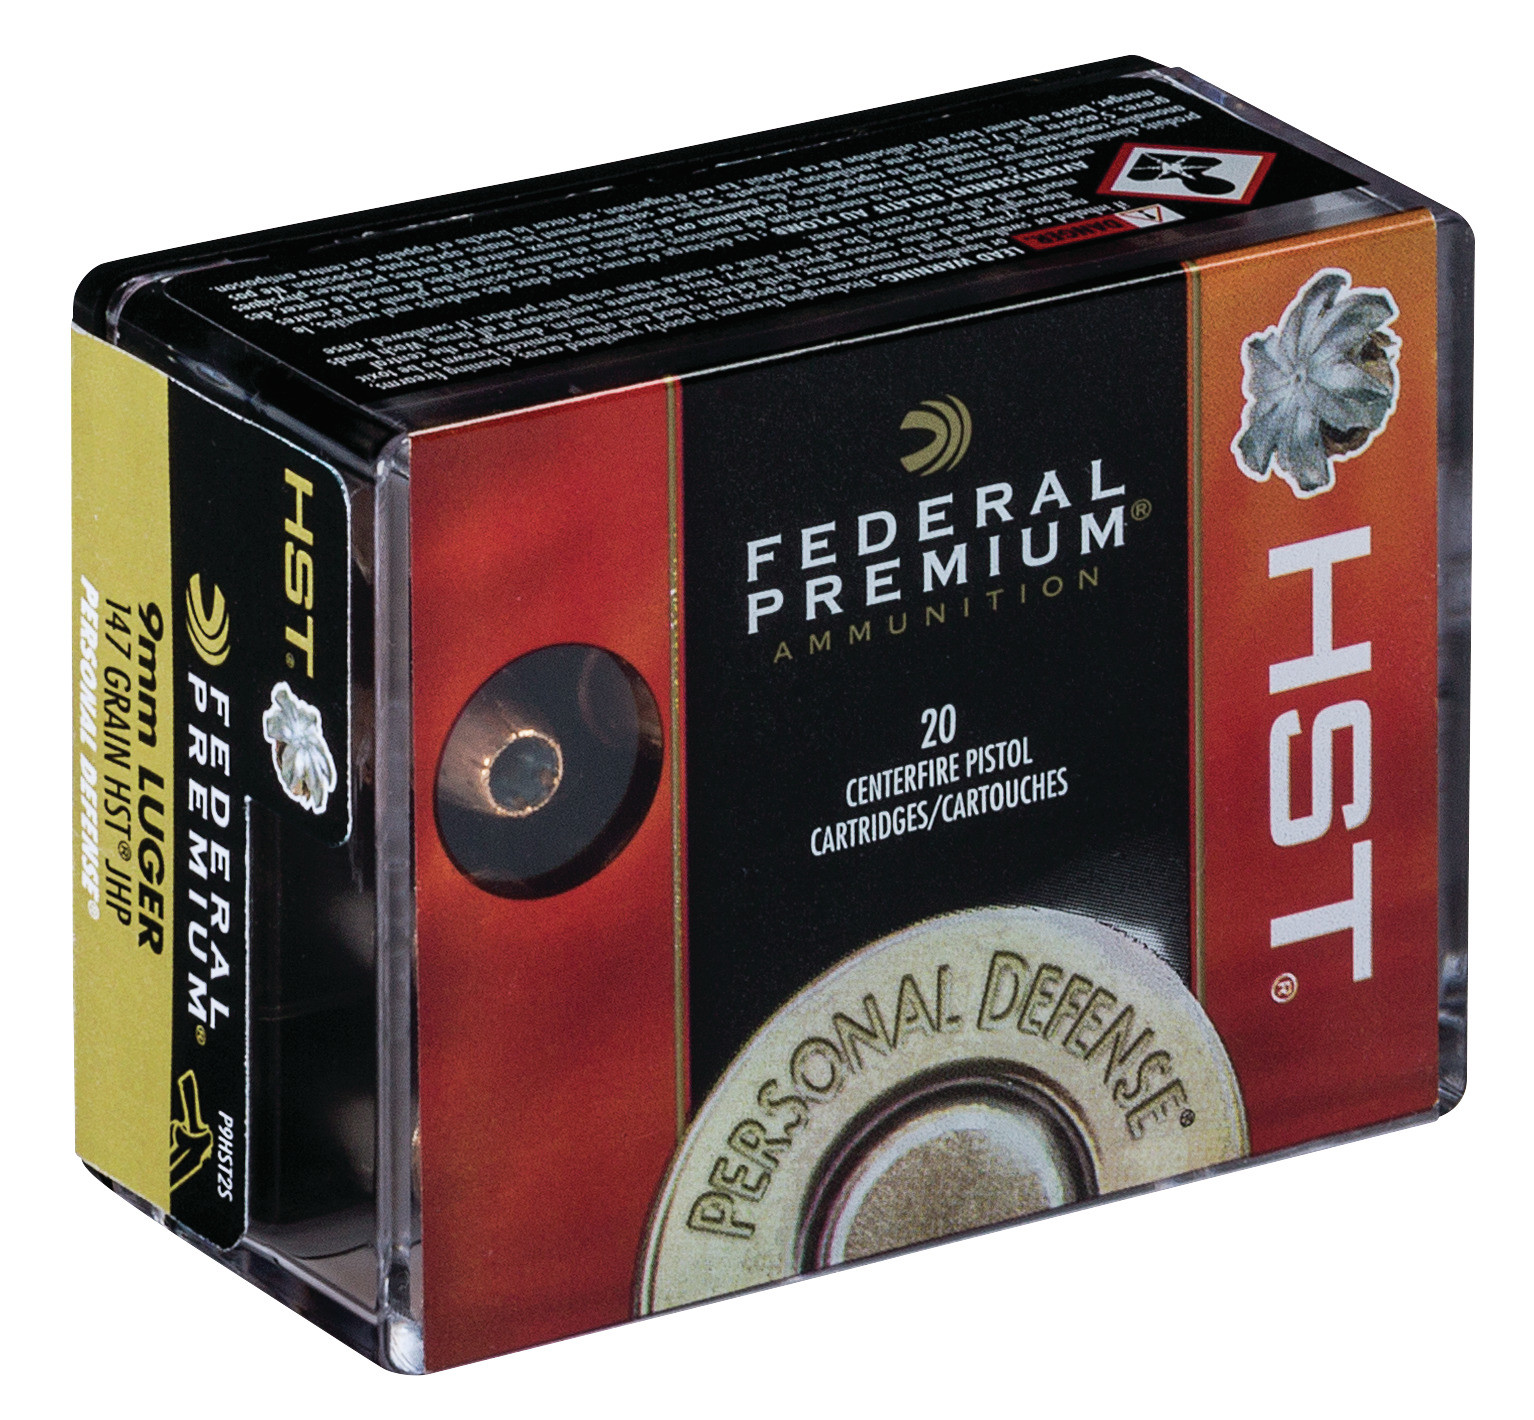 Federal Premium Personal Defense Ammunition 9mm Luger 147 Grain HST Jacketed Hollow Point Per 20